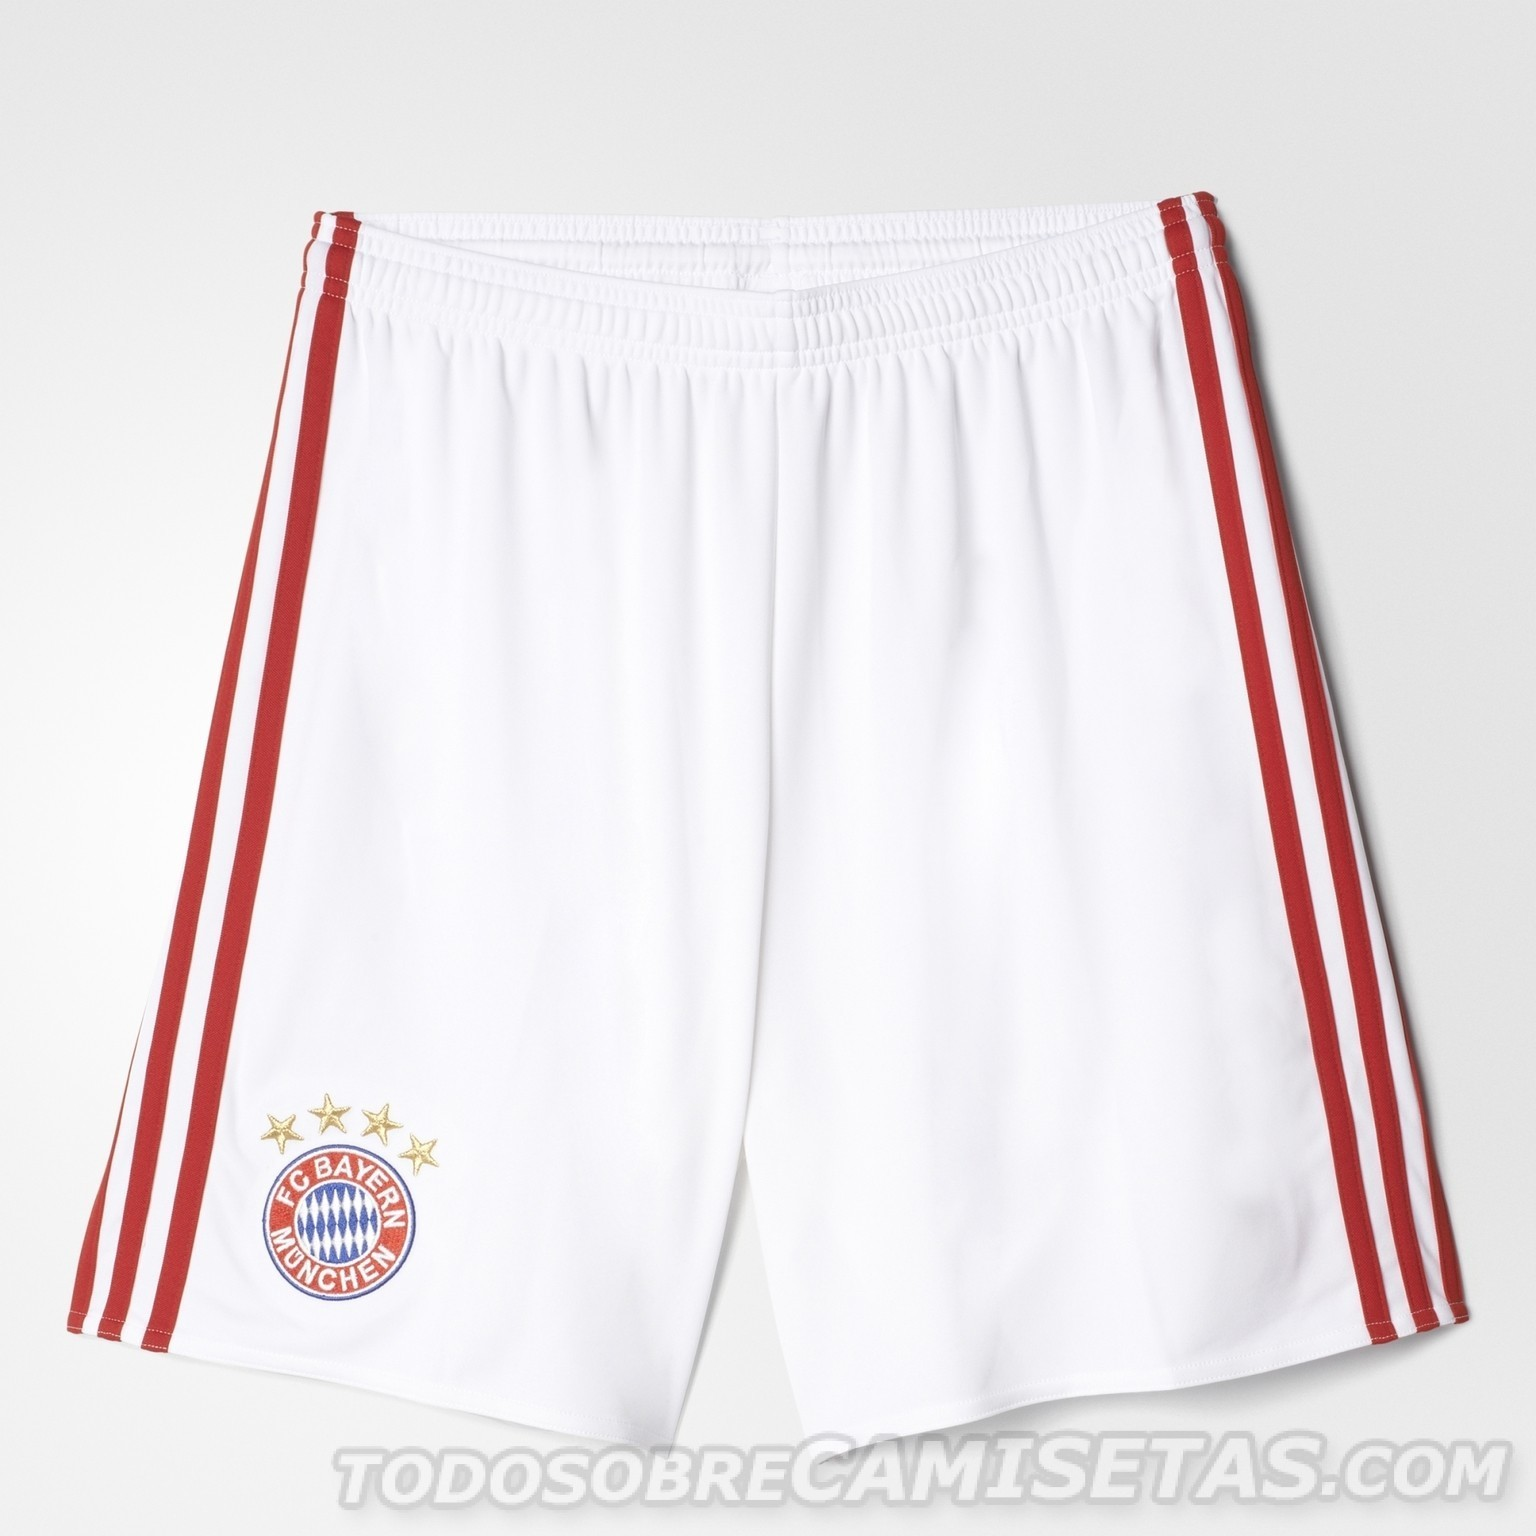 Bayern-Munich-2016-17-adidas-new-home-kit-8.jpg